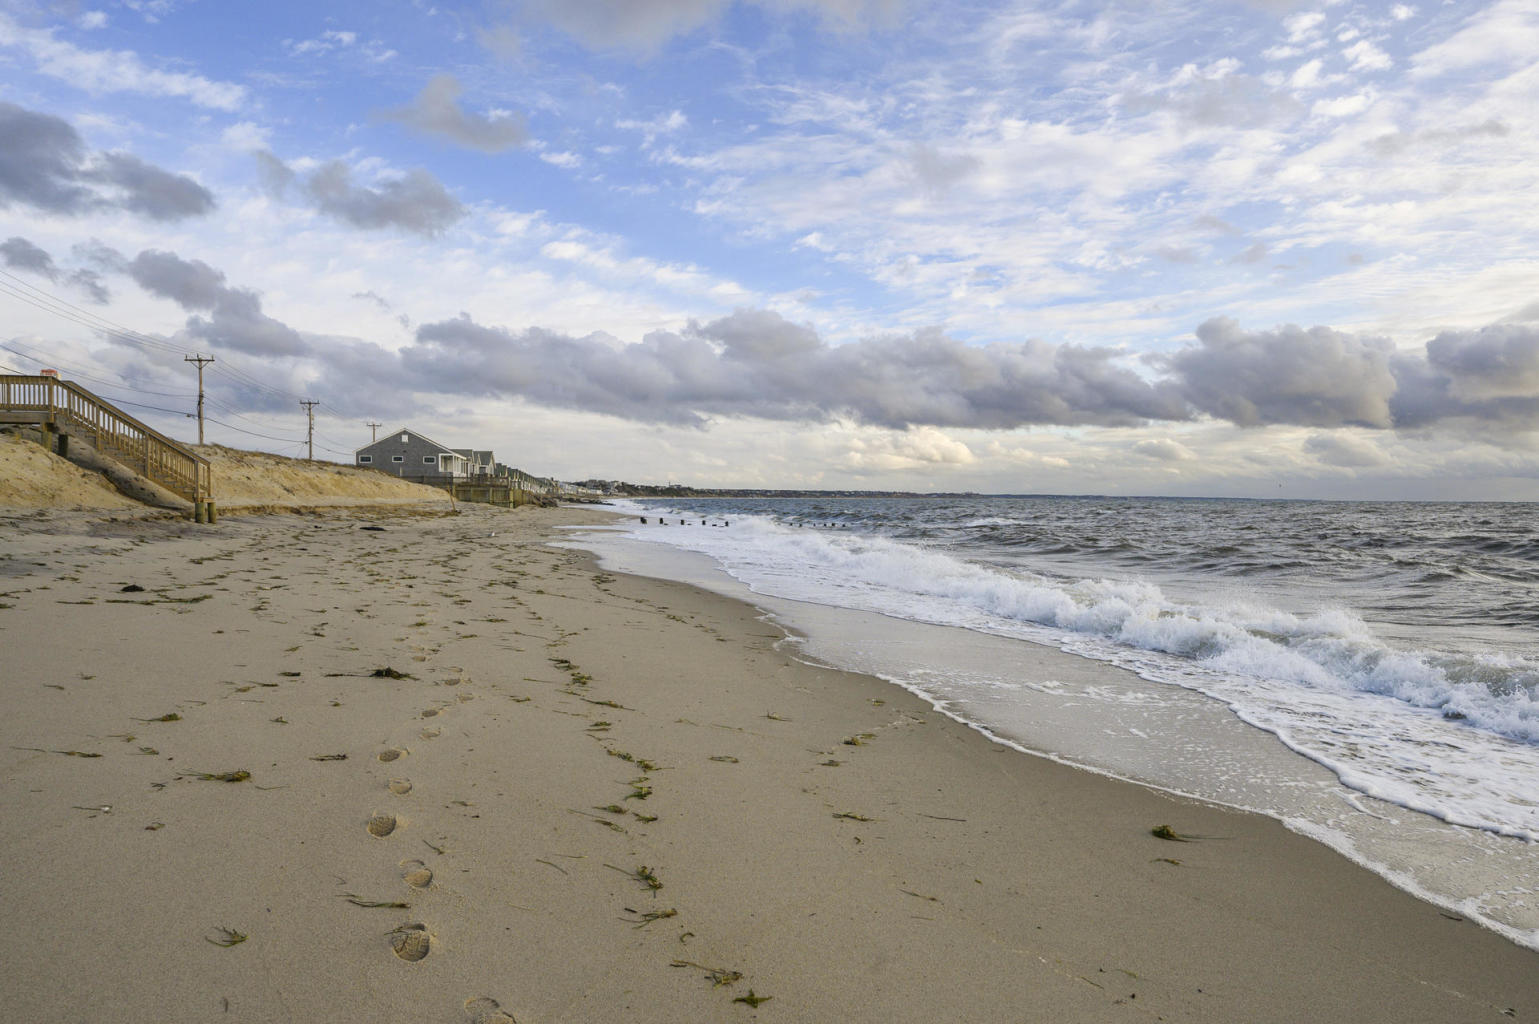 321 Shore Rd, 14S,15S,16S North Truro, MA 02652 | Listed By Griffin Realty Group | MLS # 22008206